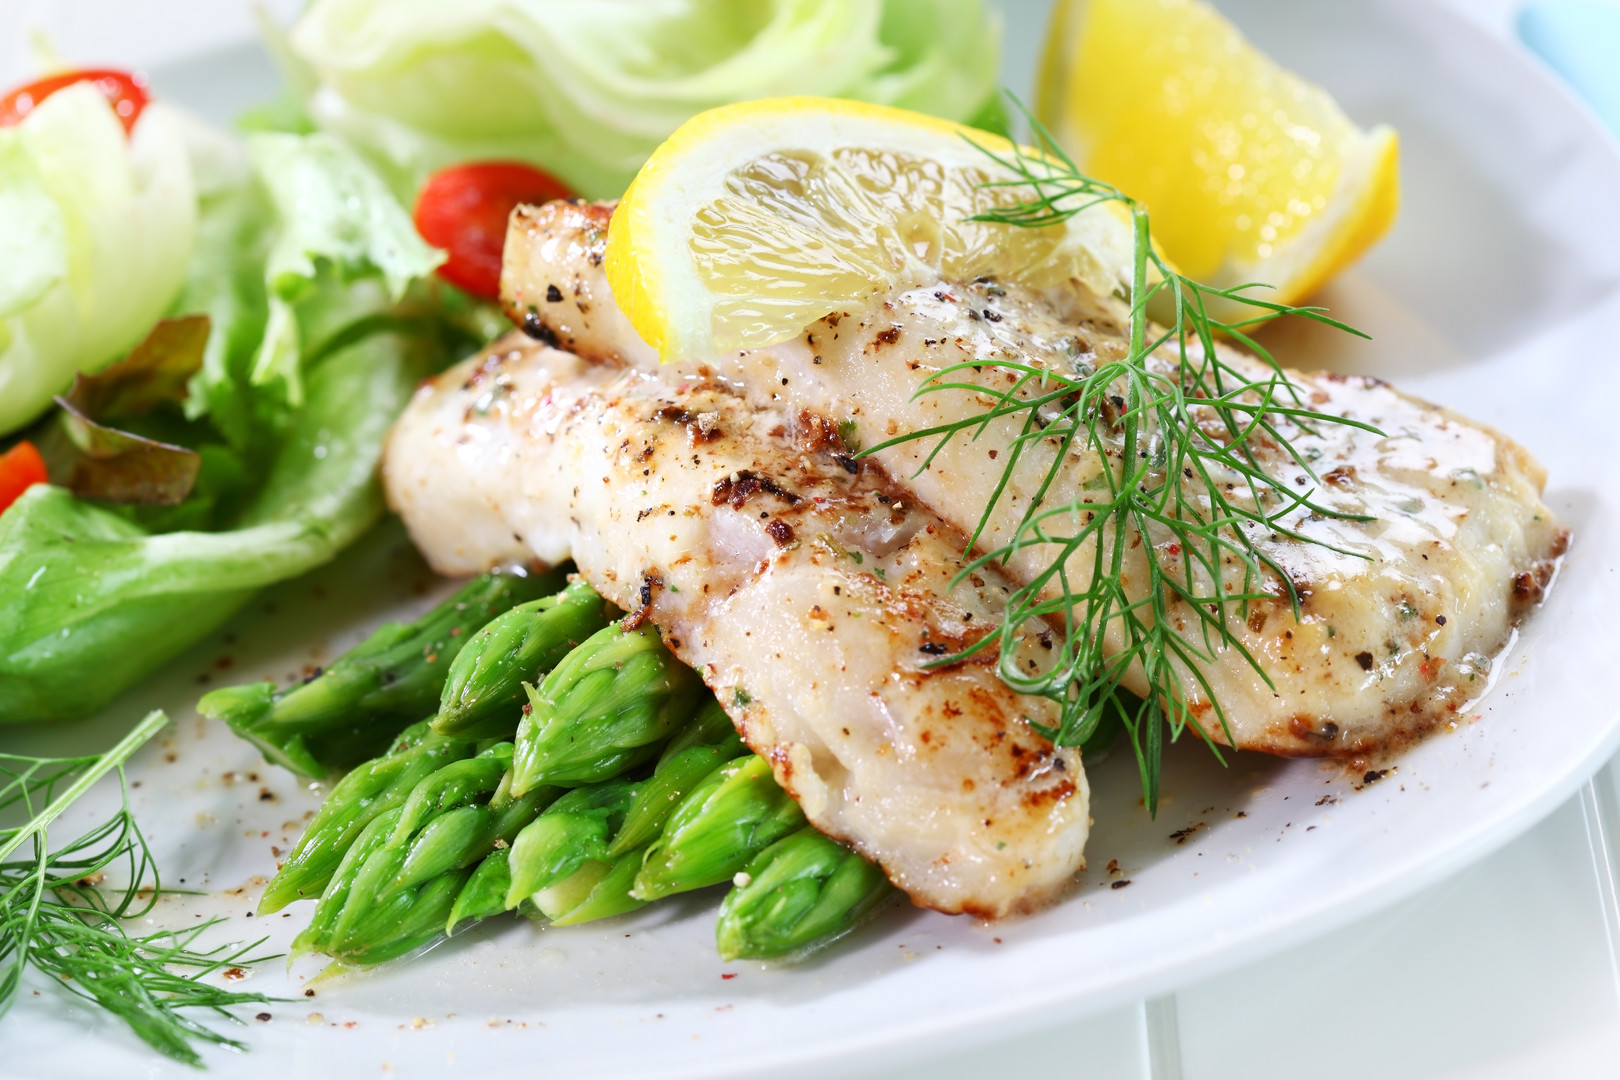 Fried fish on grilled asparagus with salad